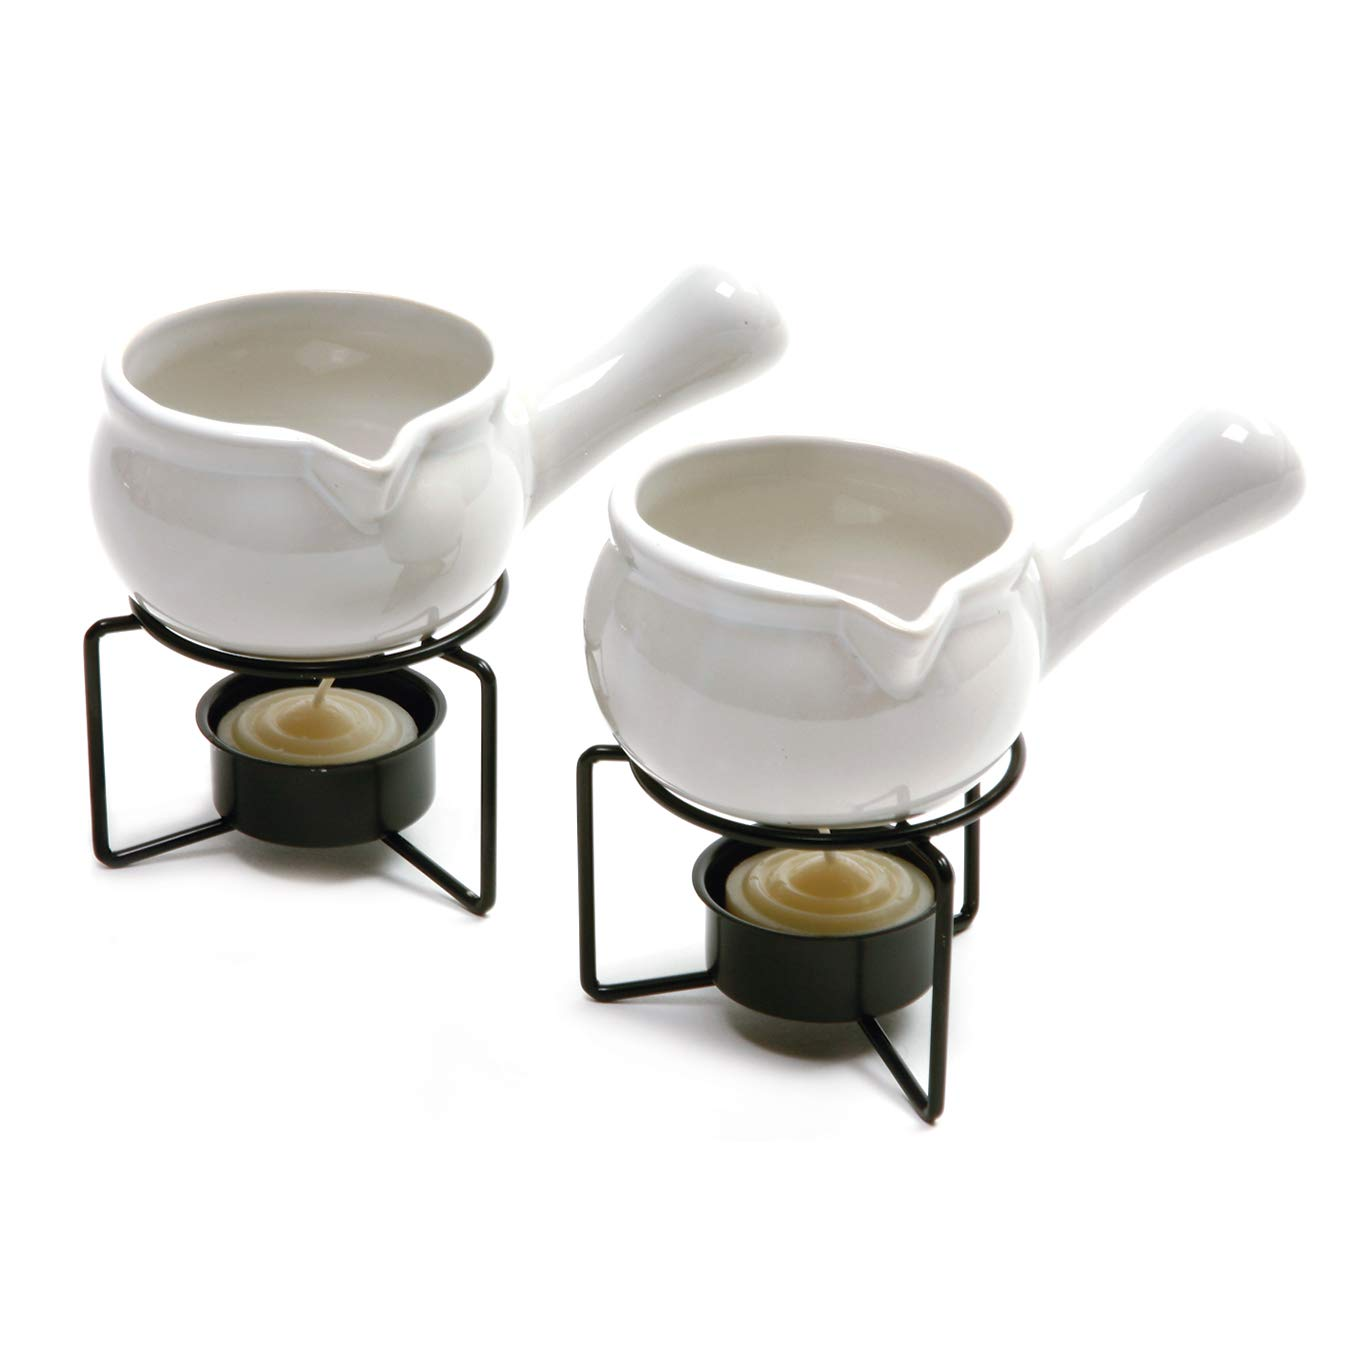 Norpro 210 Ceramic Butter Warmers, Set of 2, 1/3 cup/3 oz. White by Norpro (Image #1)